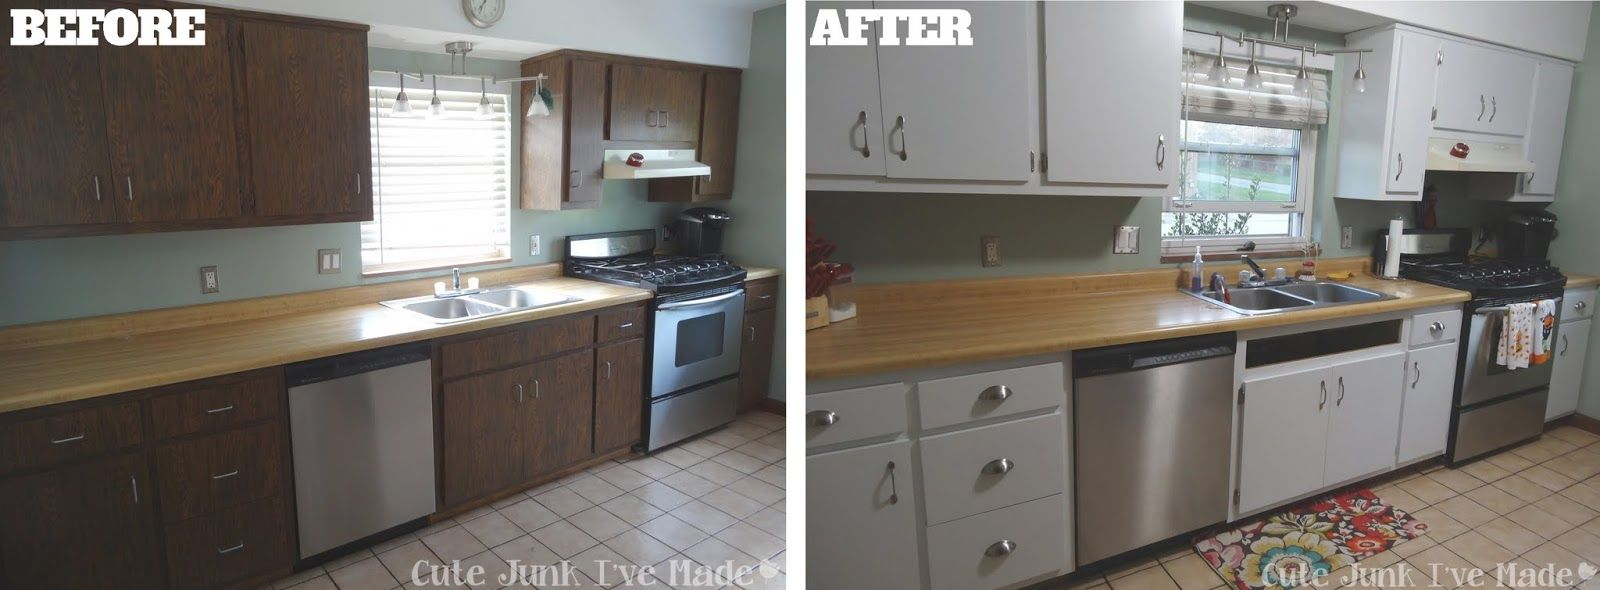 How To Paint Laminate Cabinets Before & After Use Old Kitchen